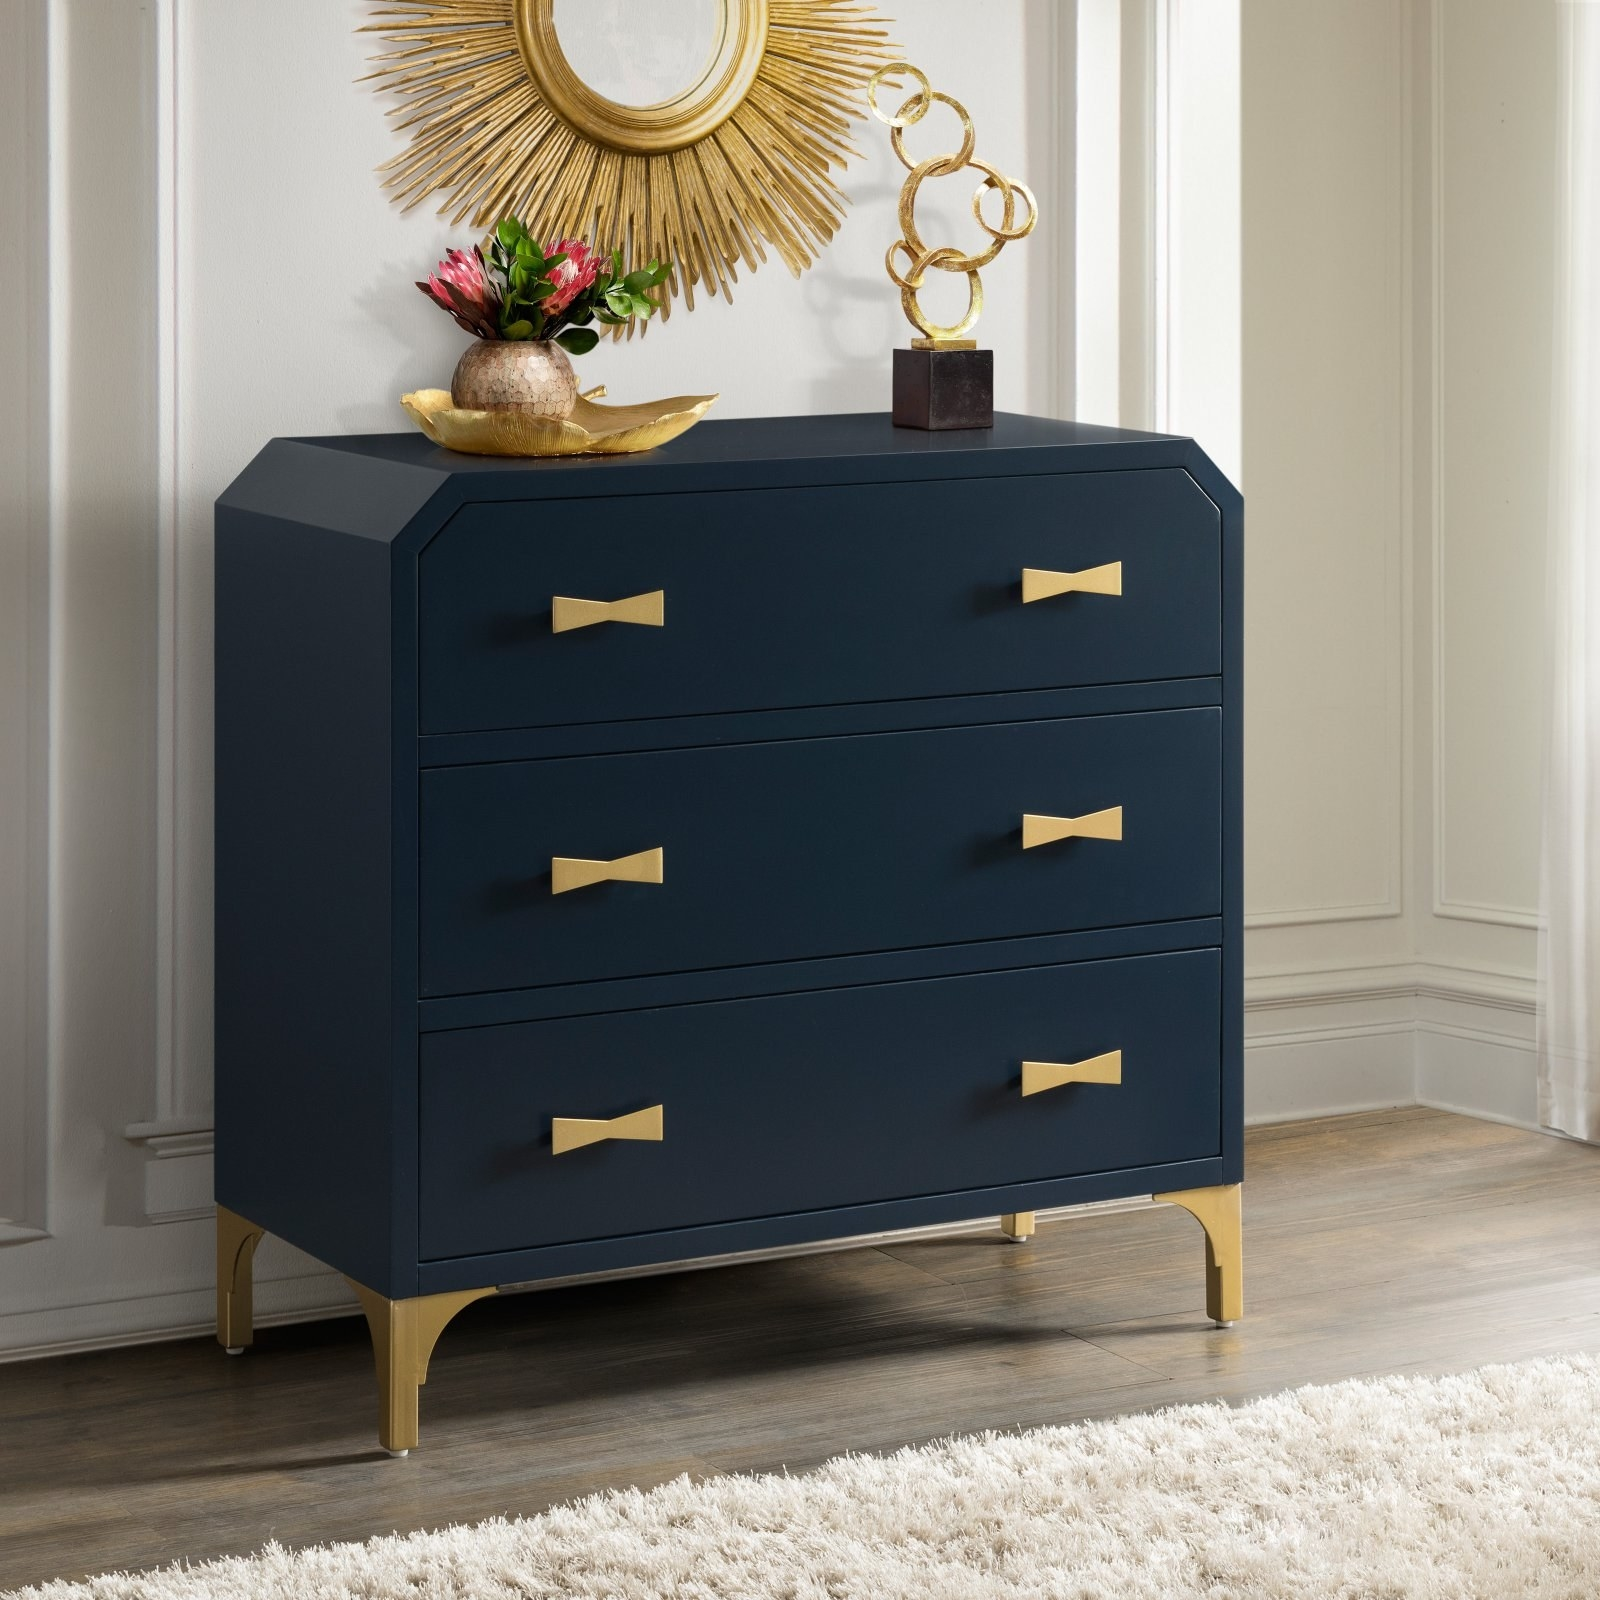 35 Gorgeous Pieces Of Furniture You Can Get At Walmart